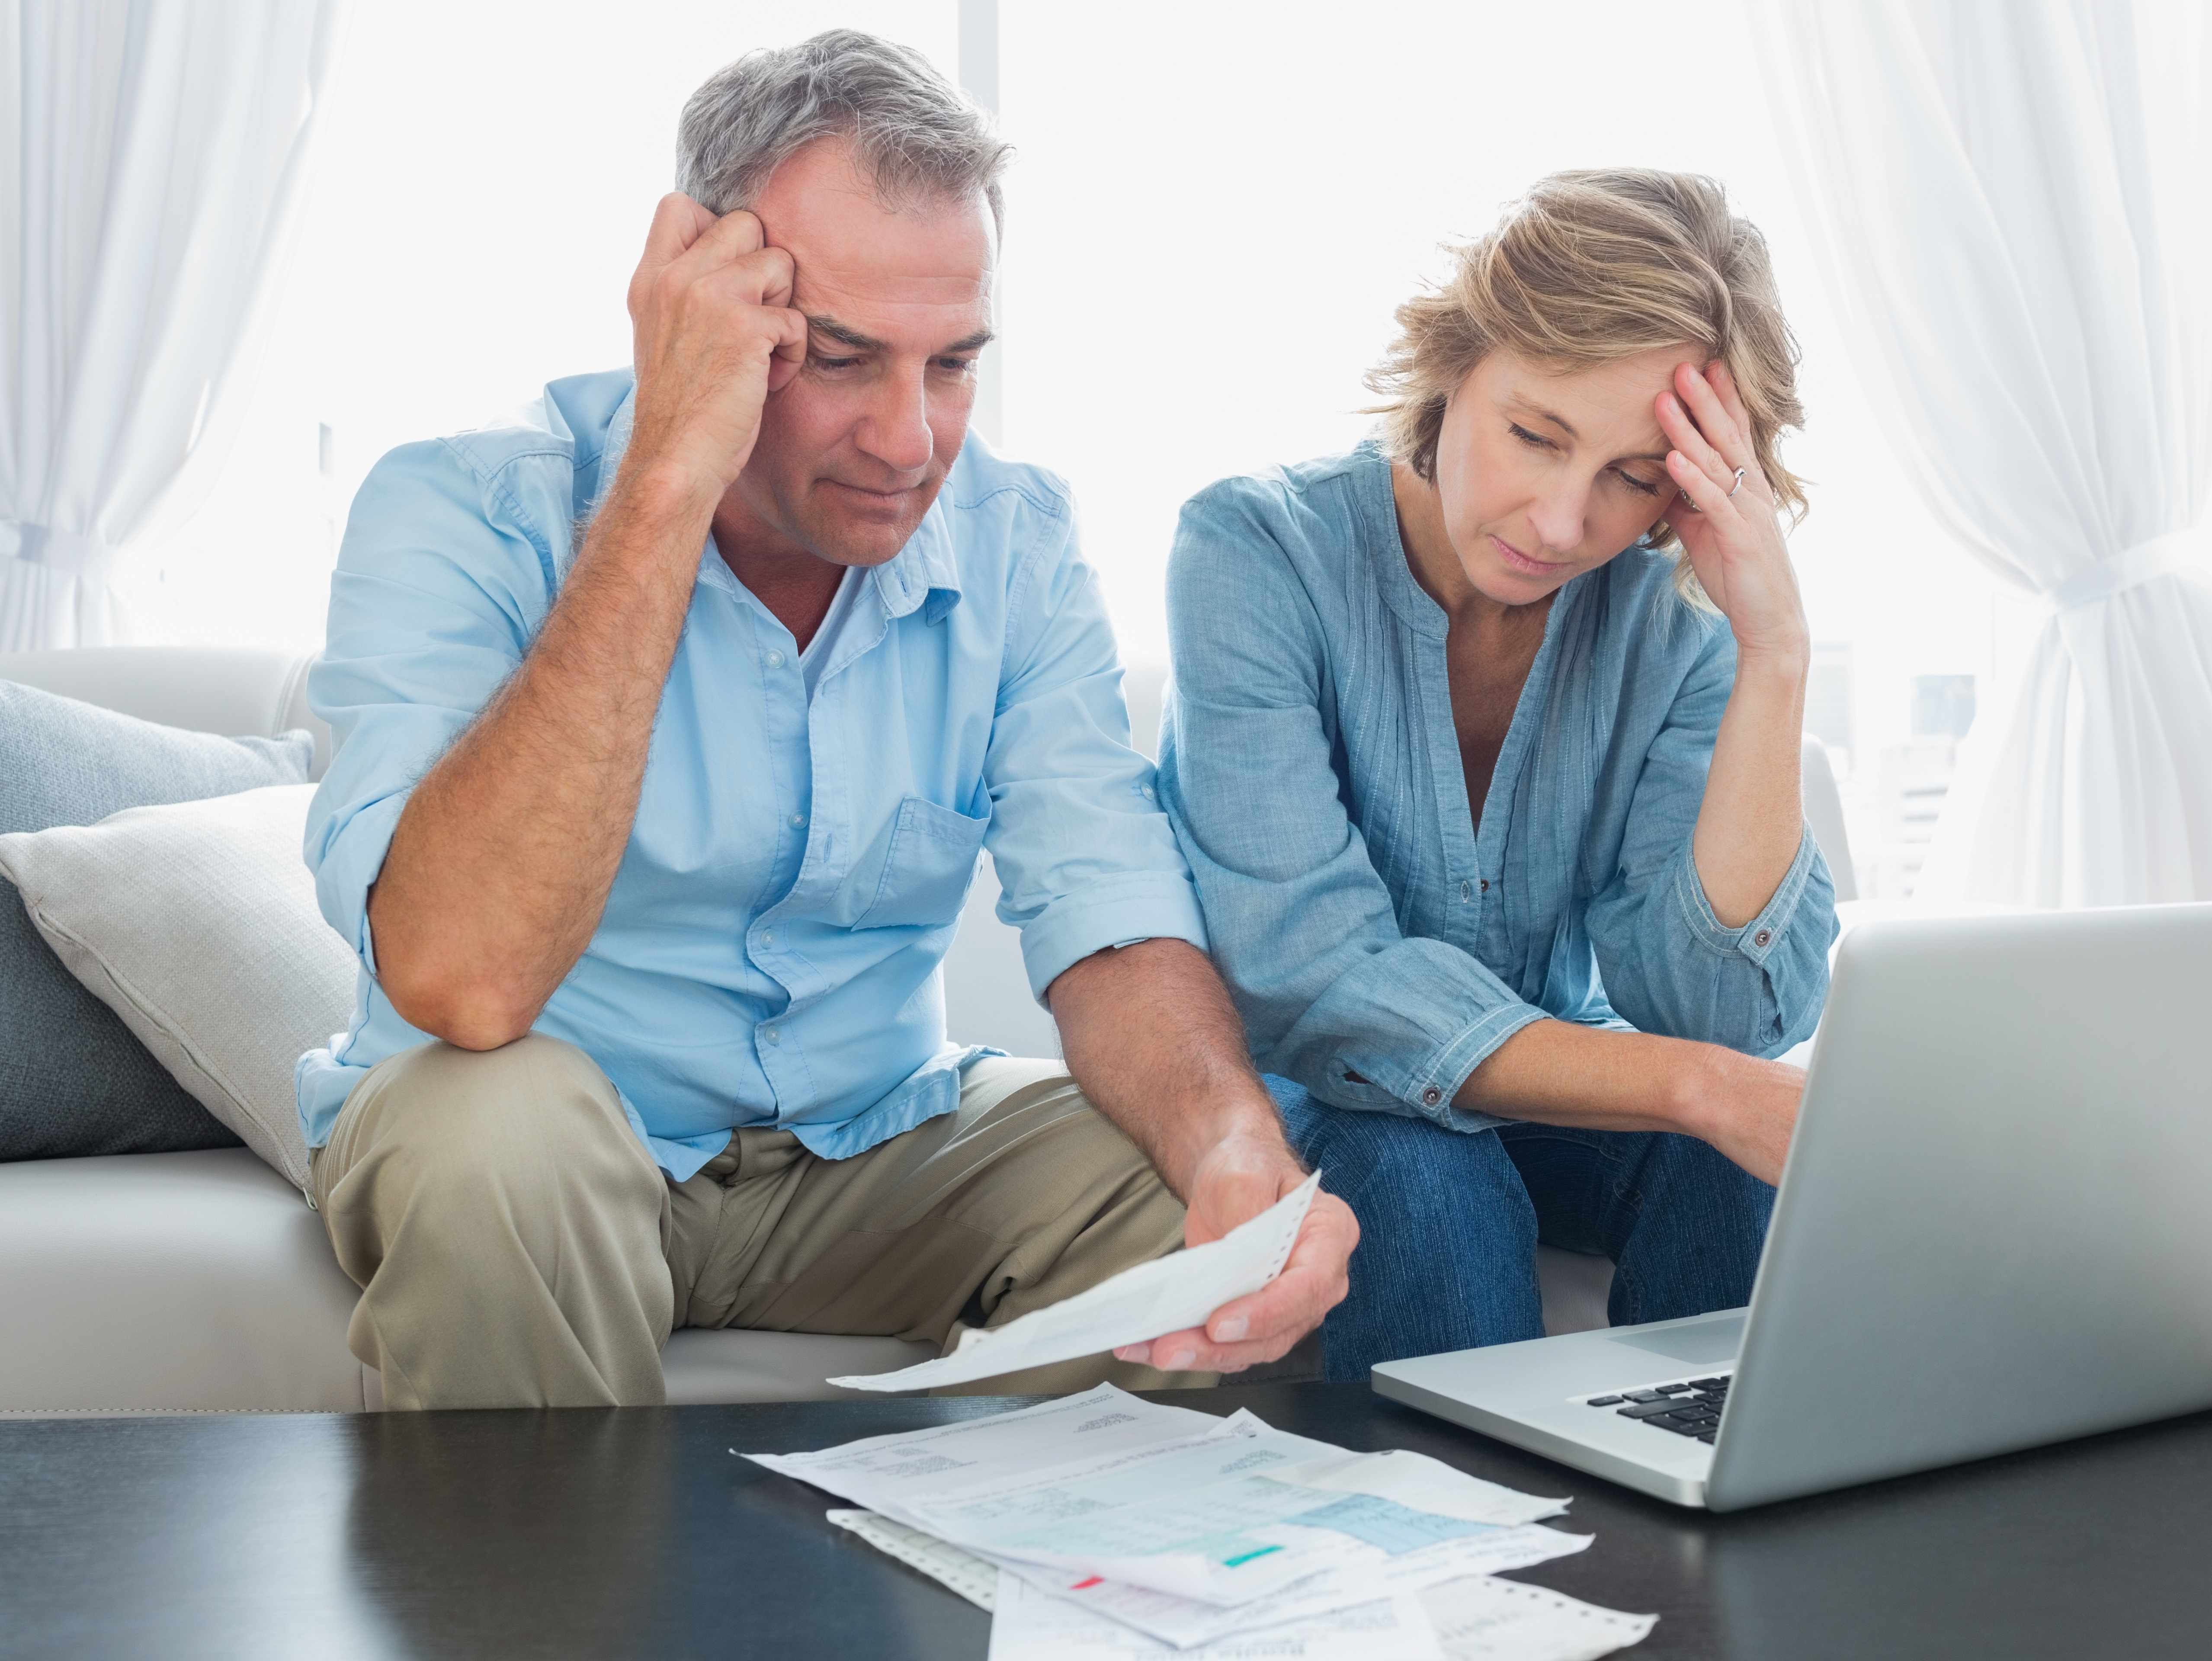 man and woman, couple, sitting at computer worried and concerned about finances